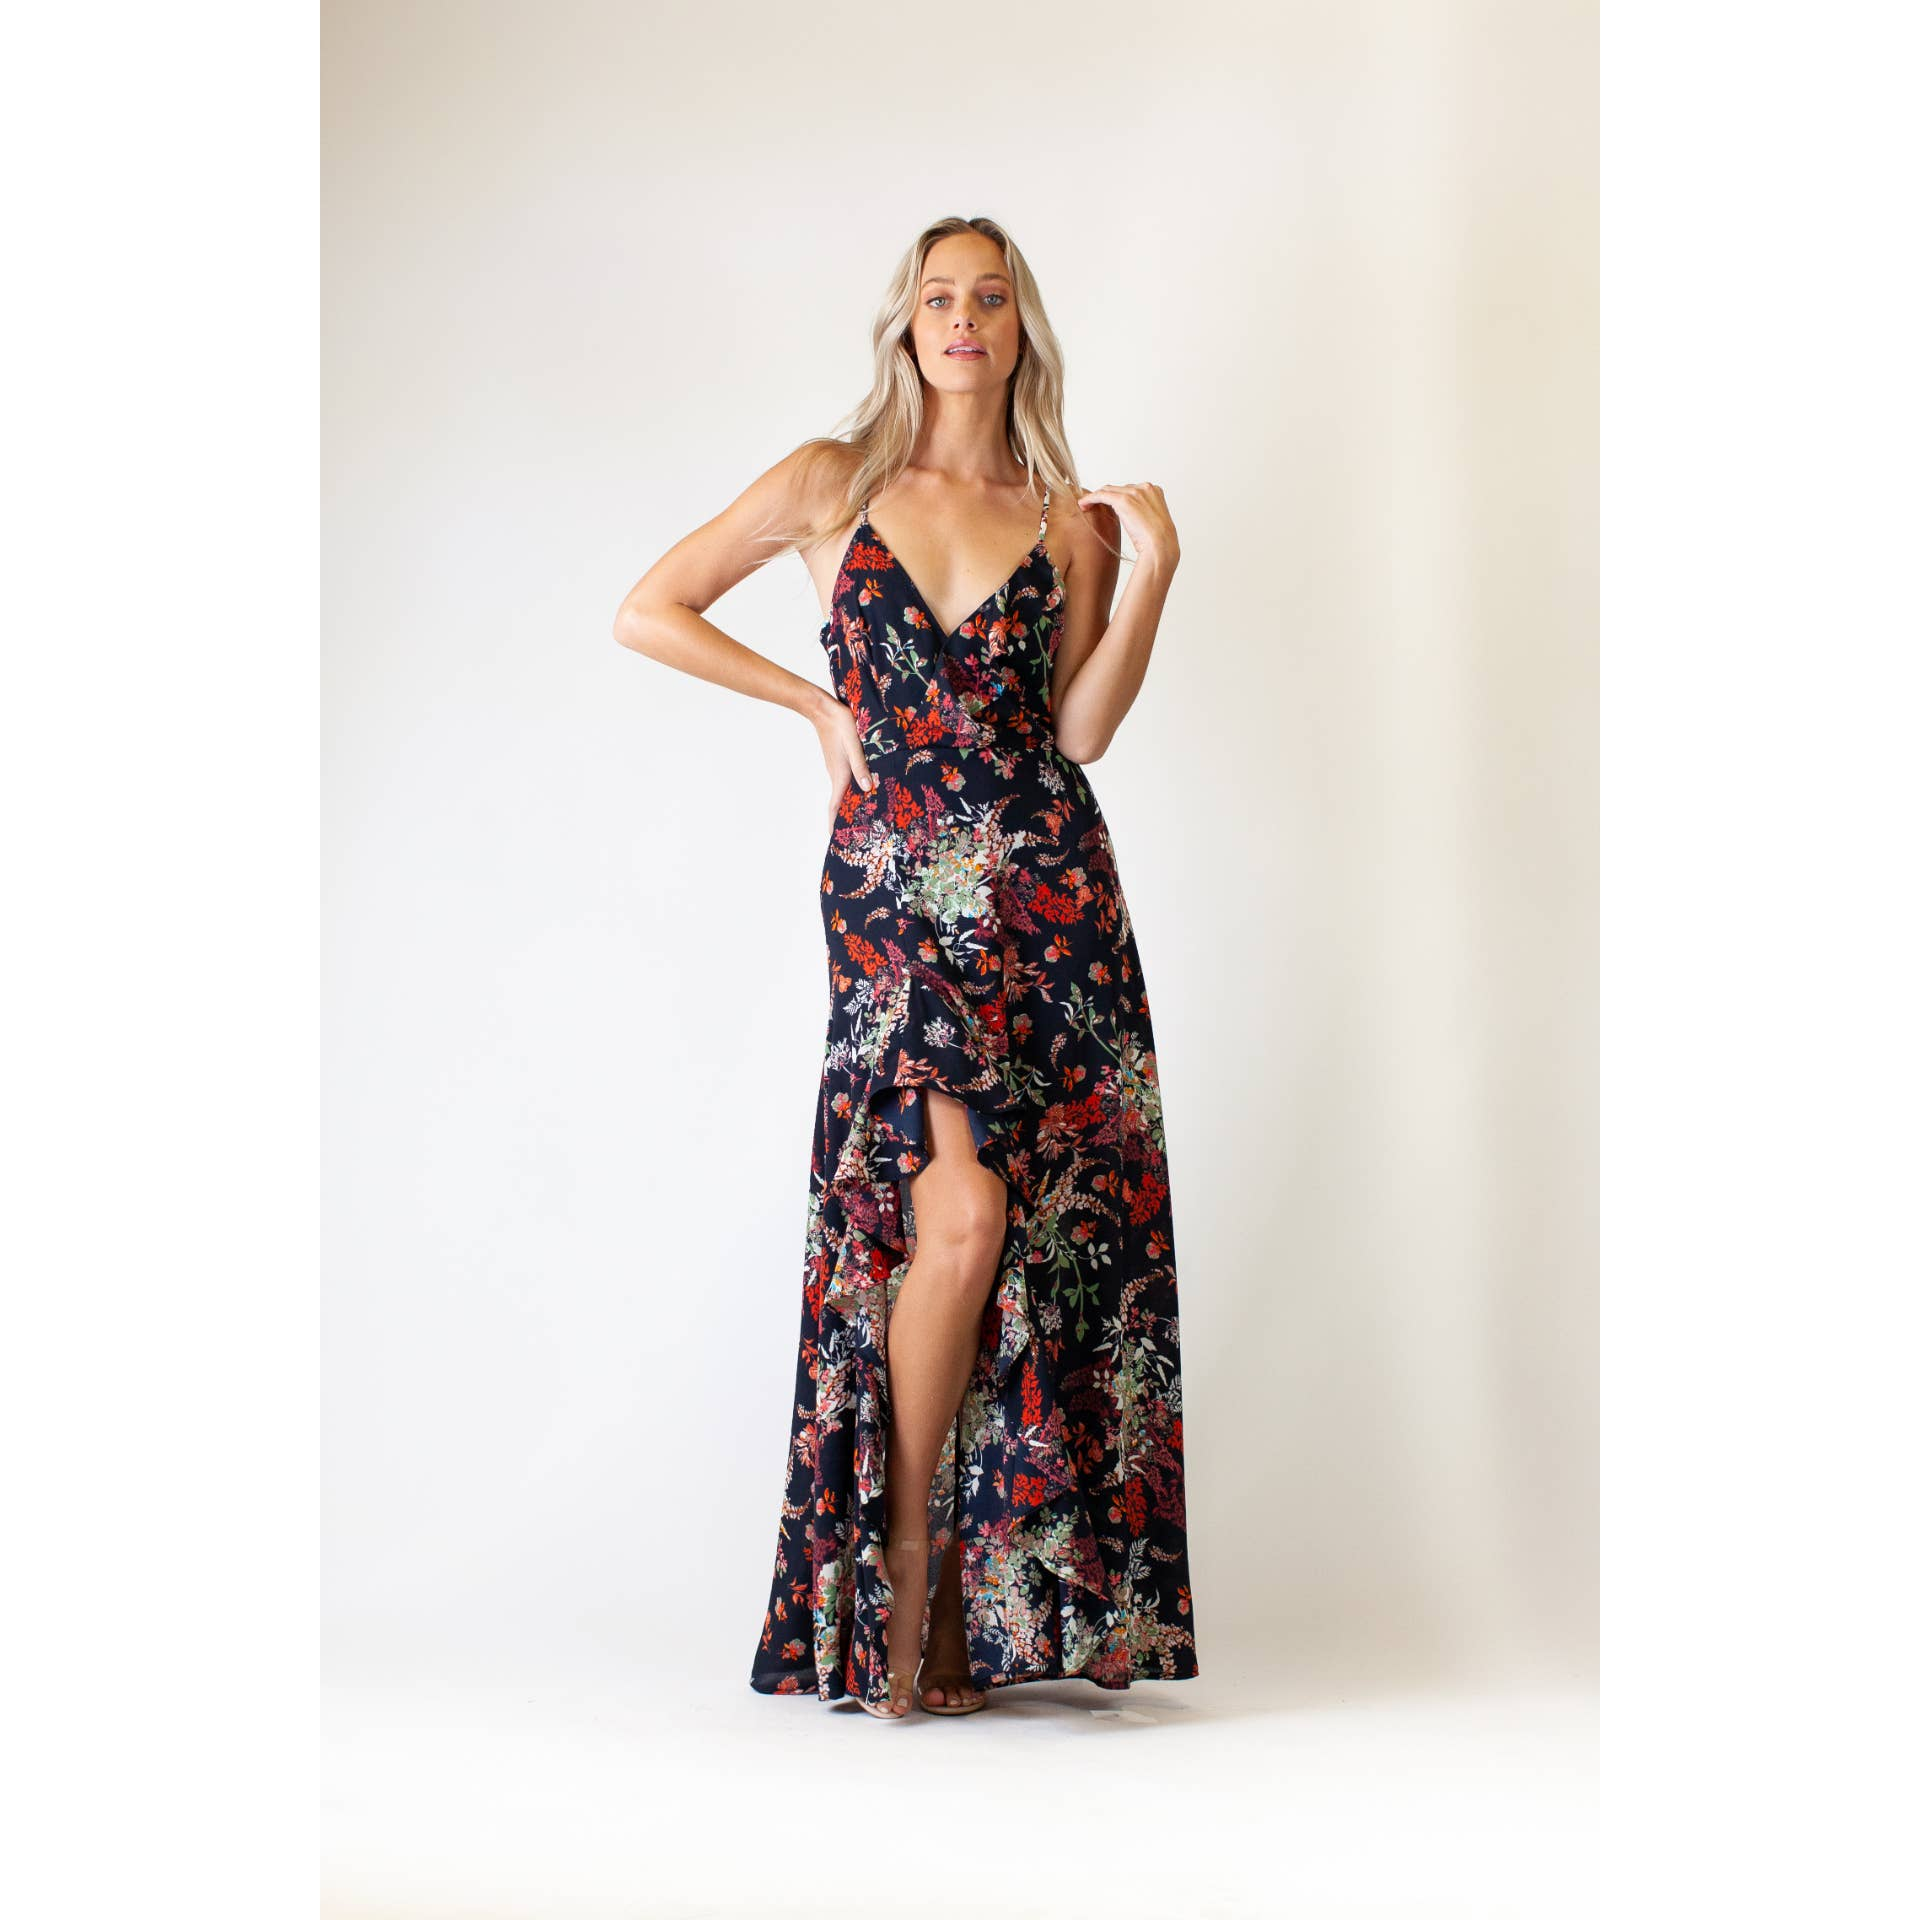 New With Tags Body Cover Strapless Chiffon Floral Dress S//M or M//L